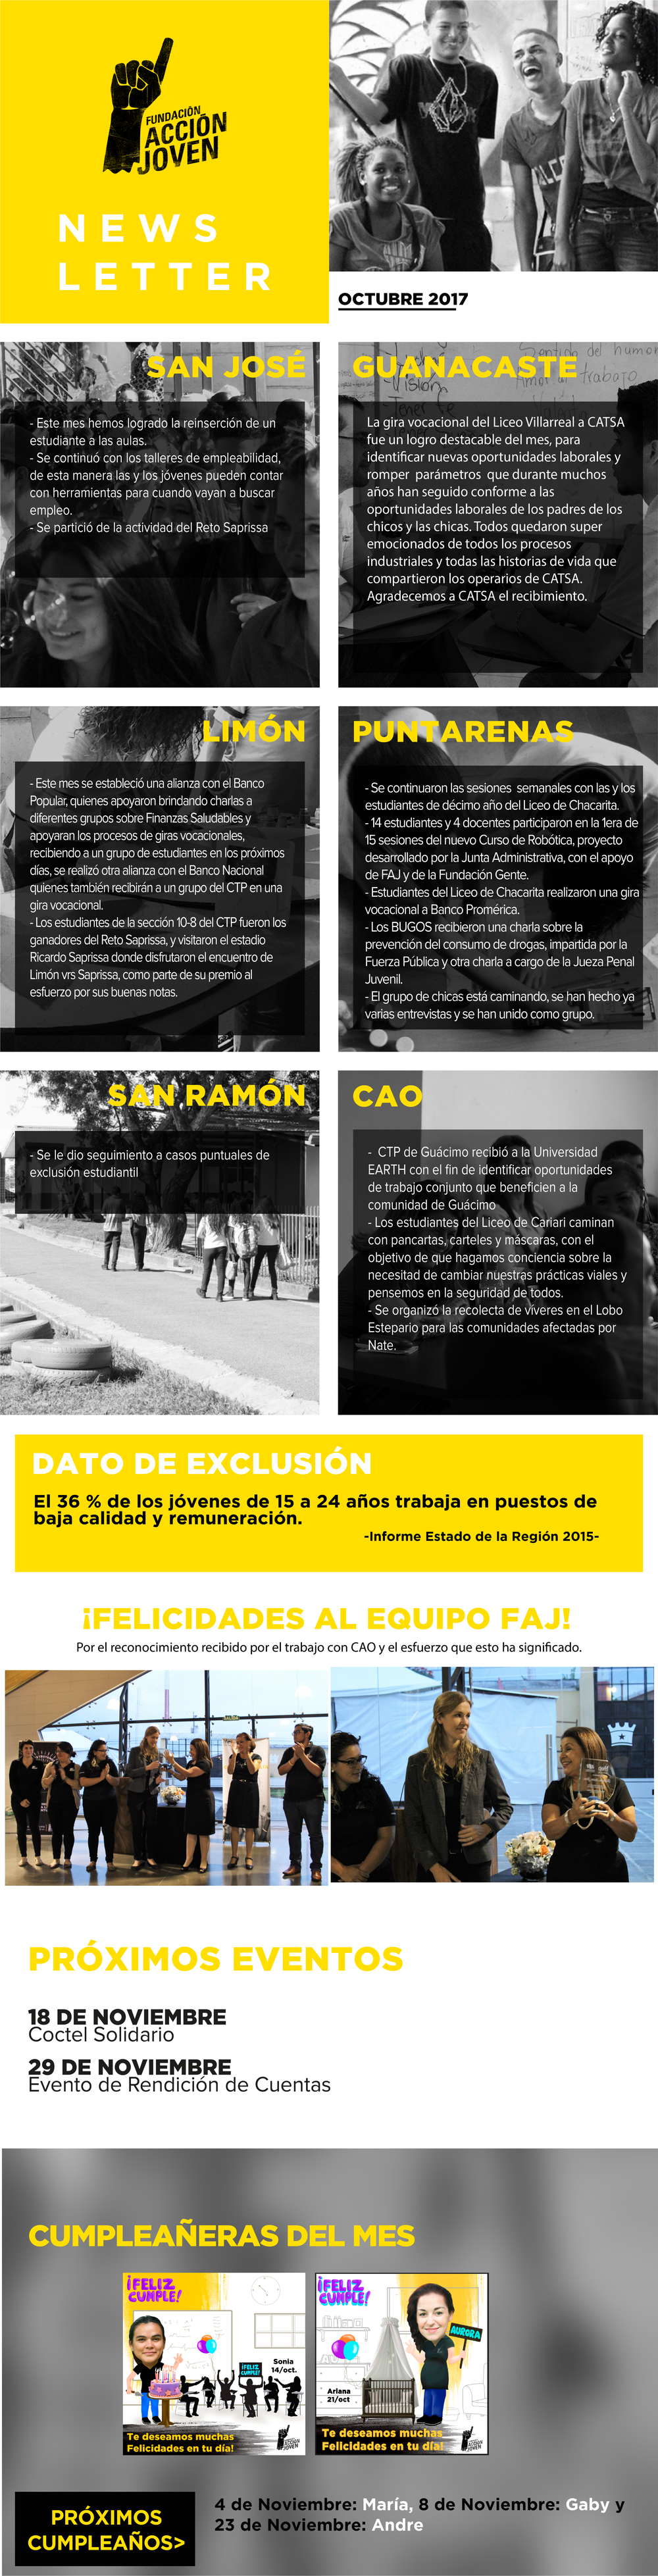 Newsletter Interno-OCT 2017.png